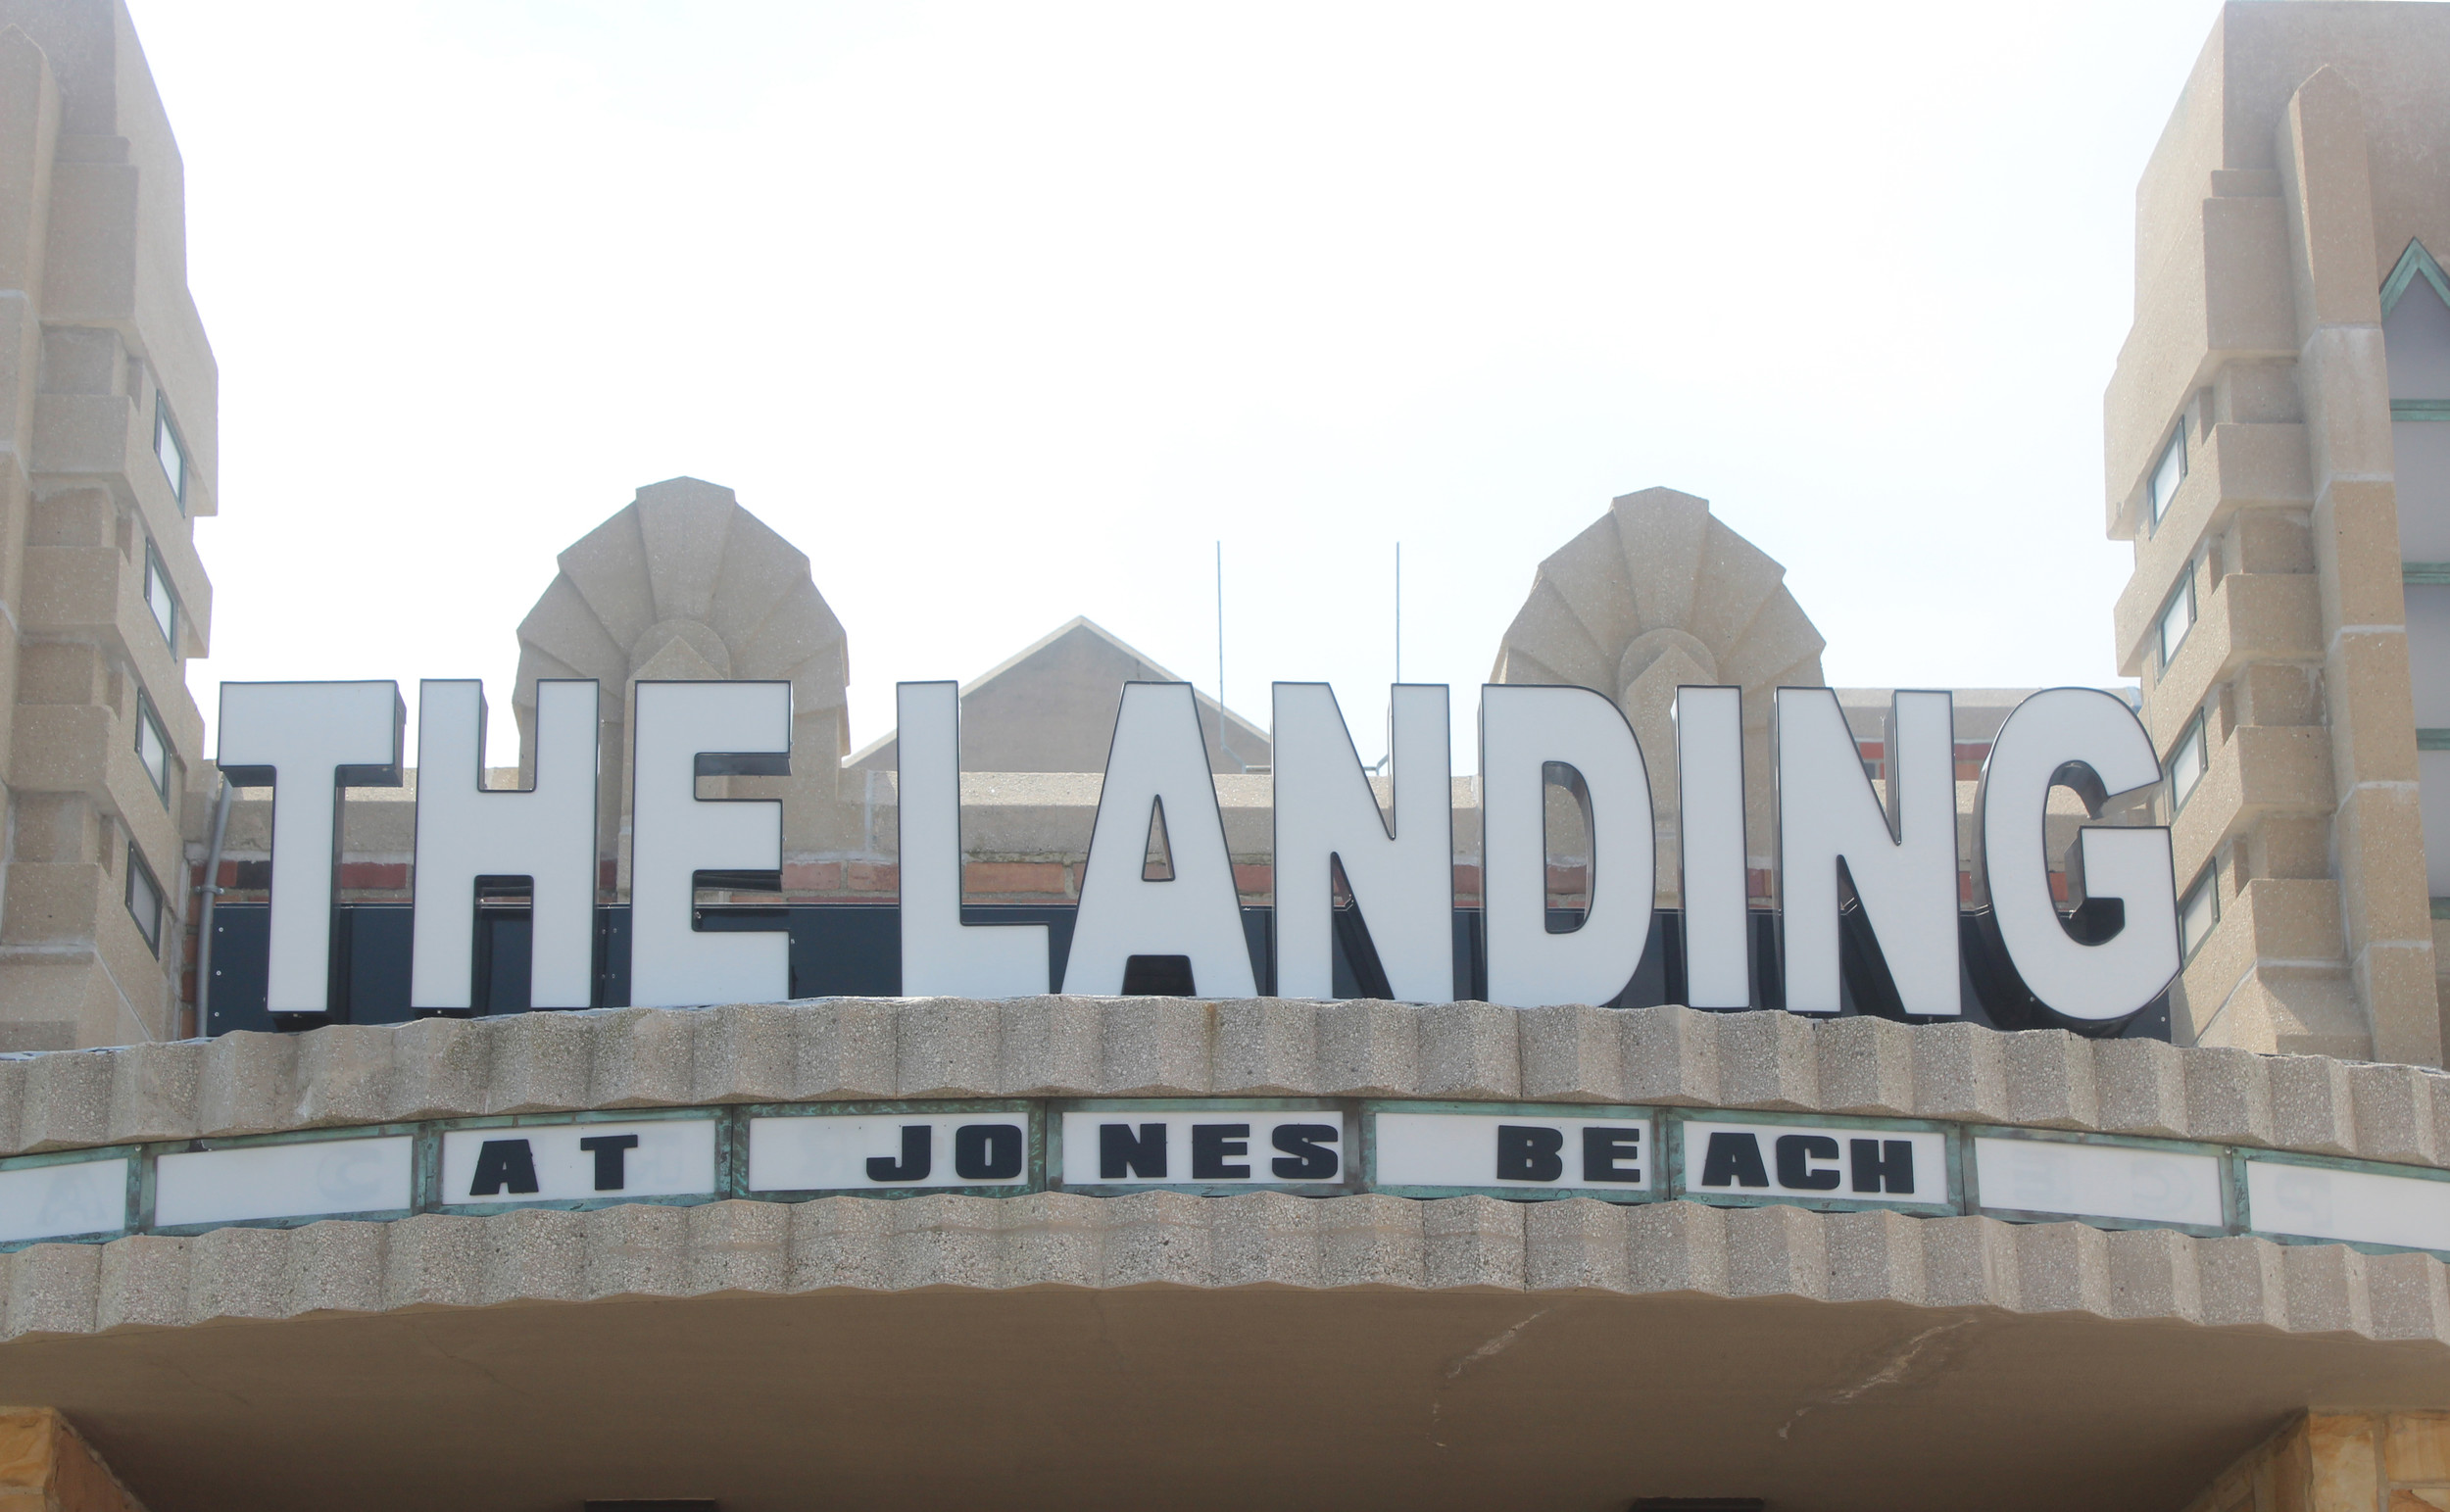 The Landing opened at Jones Beach Independence Day, bringing back to classic architecture and style of the Marine Dining Hall.